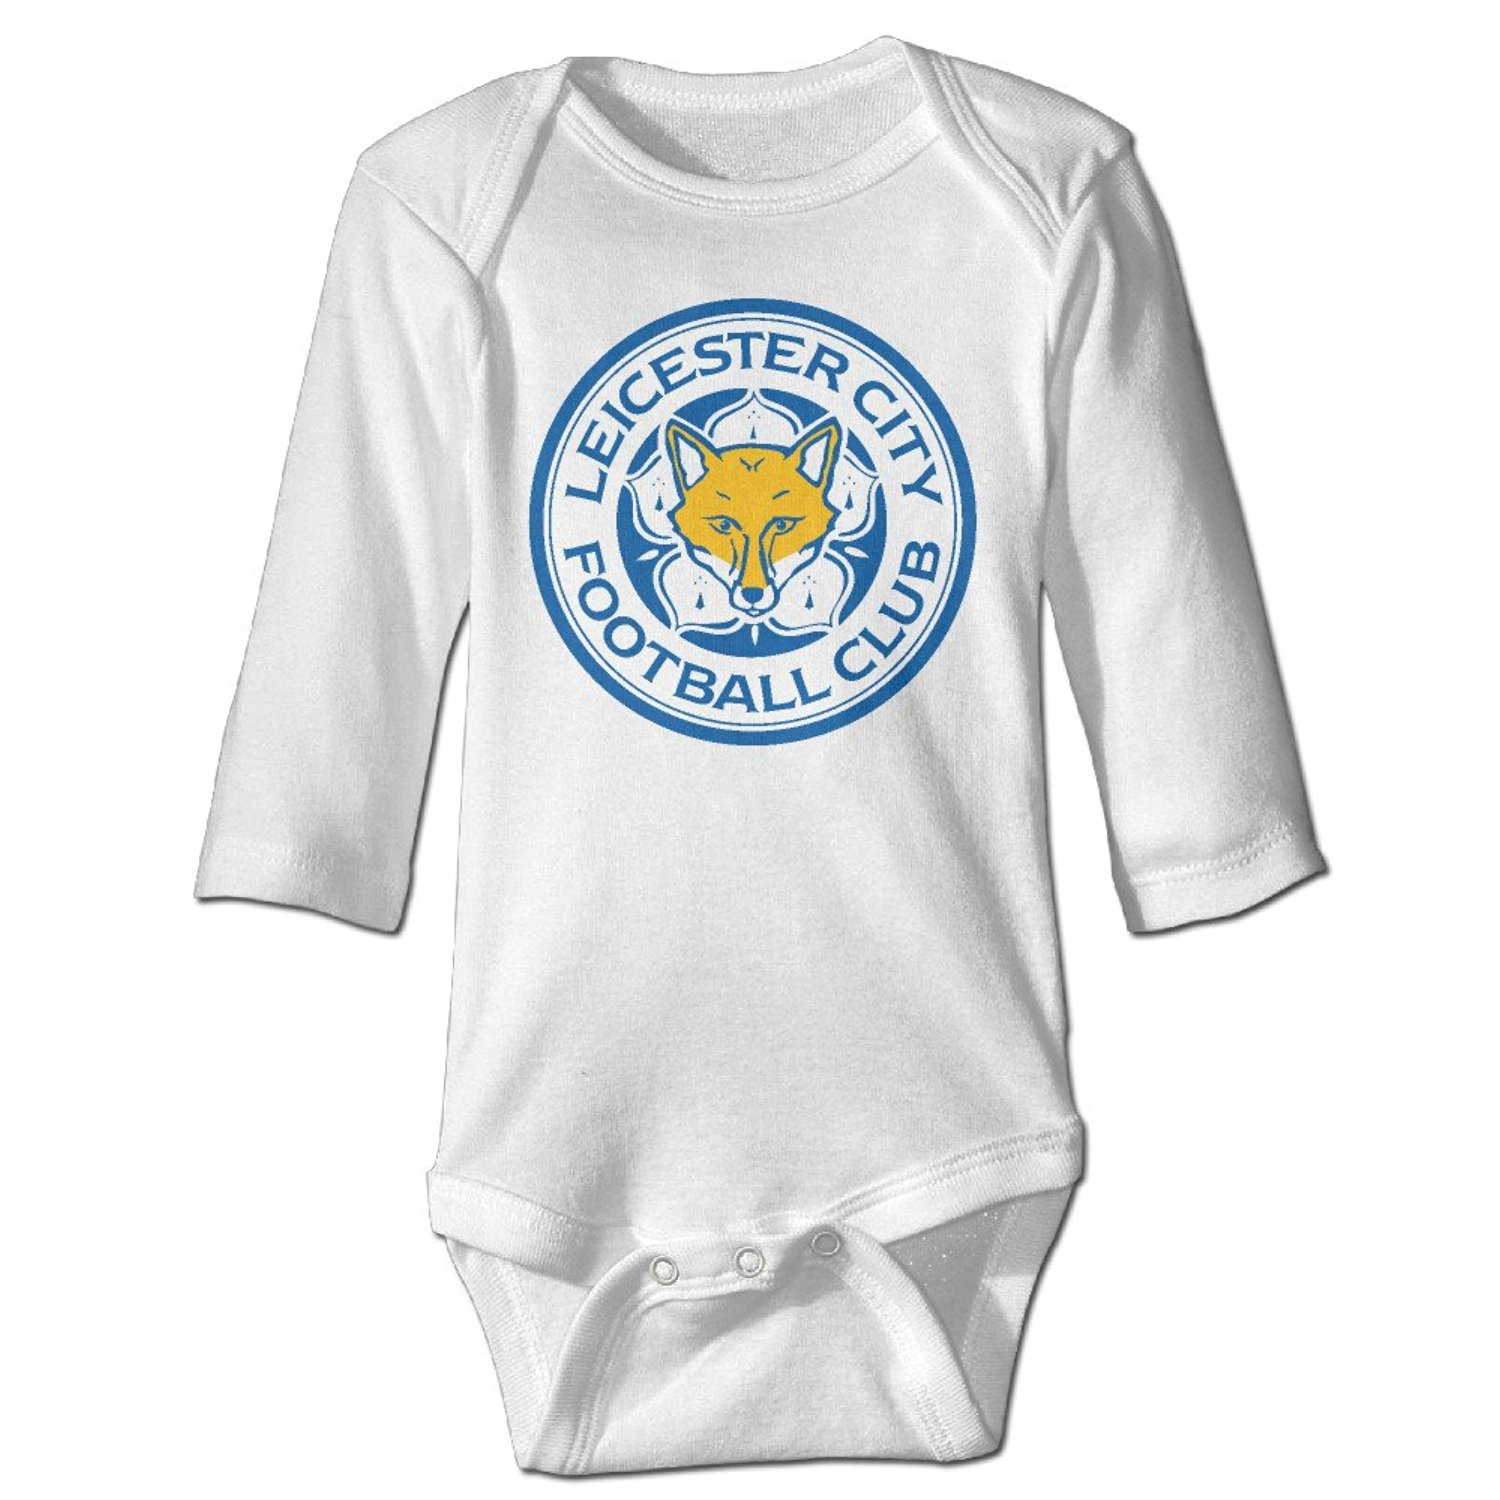 Cheap Baby Football Clothes find Baby Football Clothes deals on